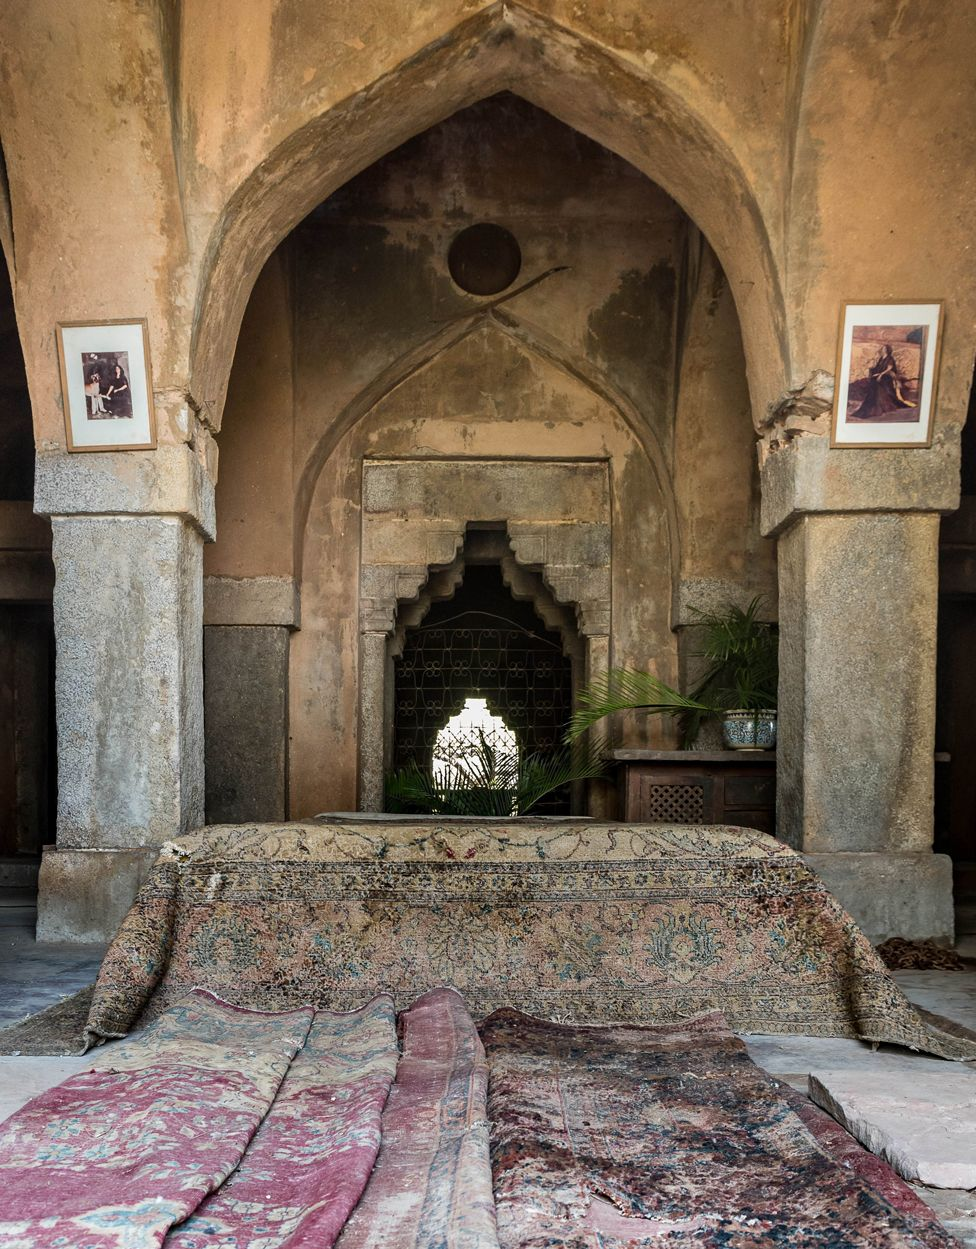 Carpets near a series of stone arches